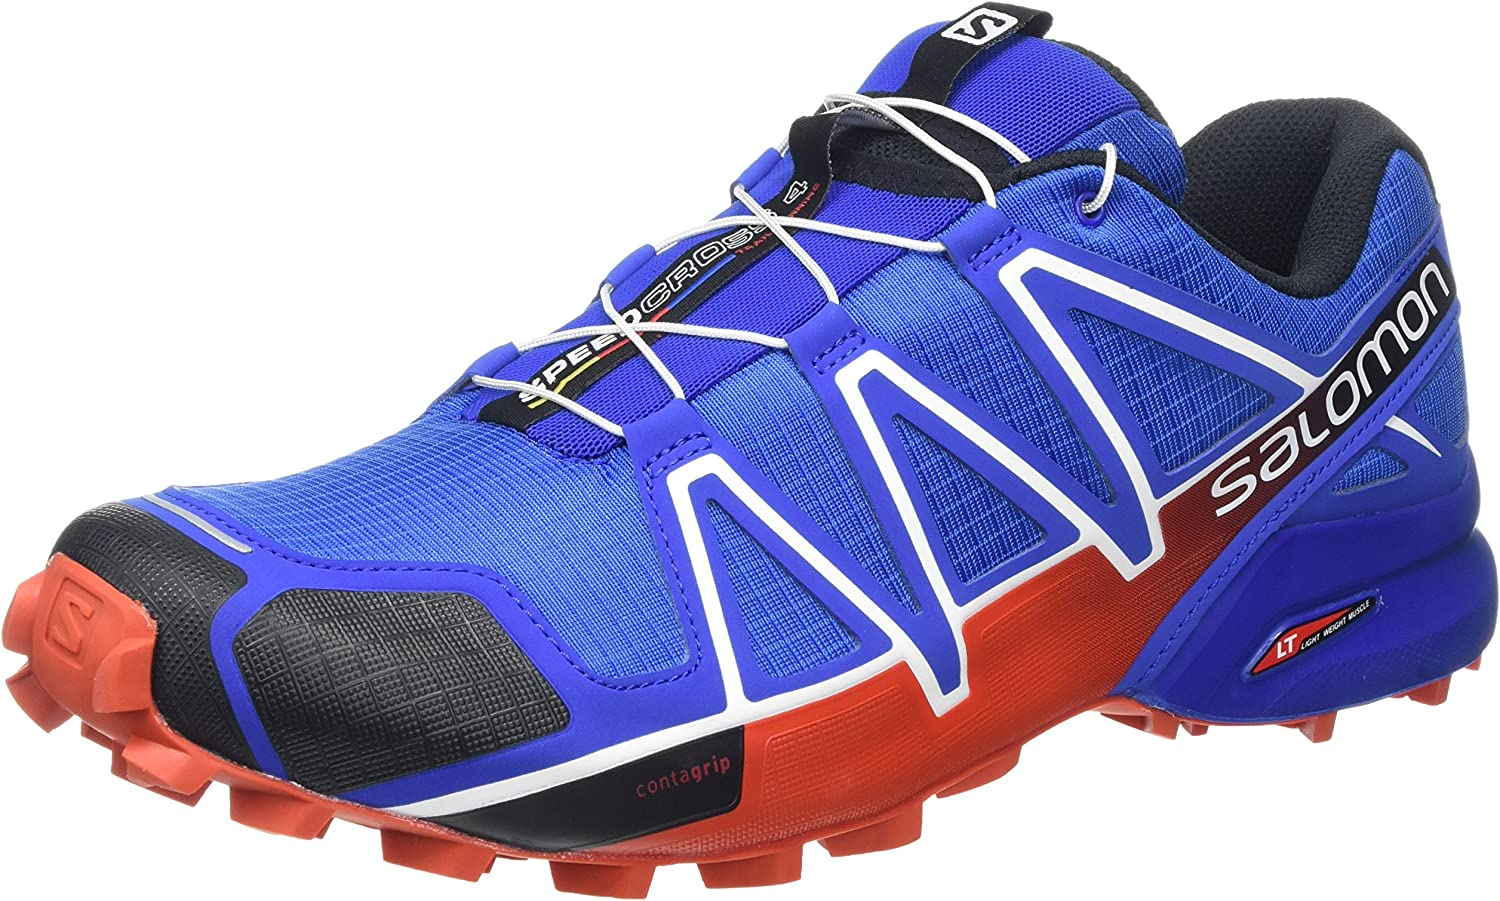 Salomon Men's Speedcross 4 Trail Running shoes, bluee Yonder Black Lava orange, 8 UK